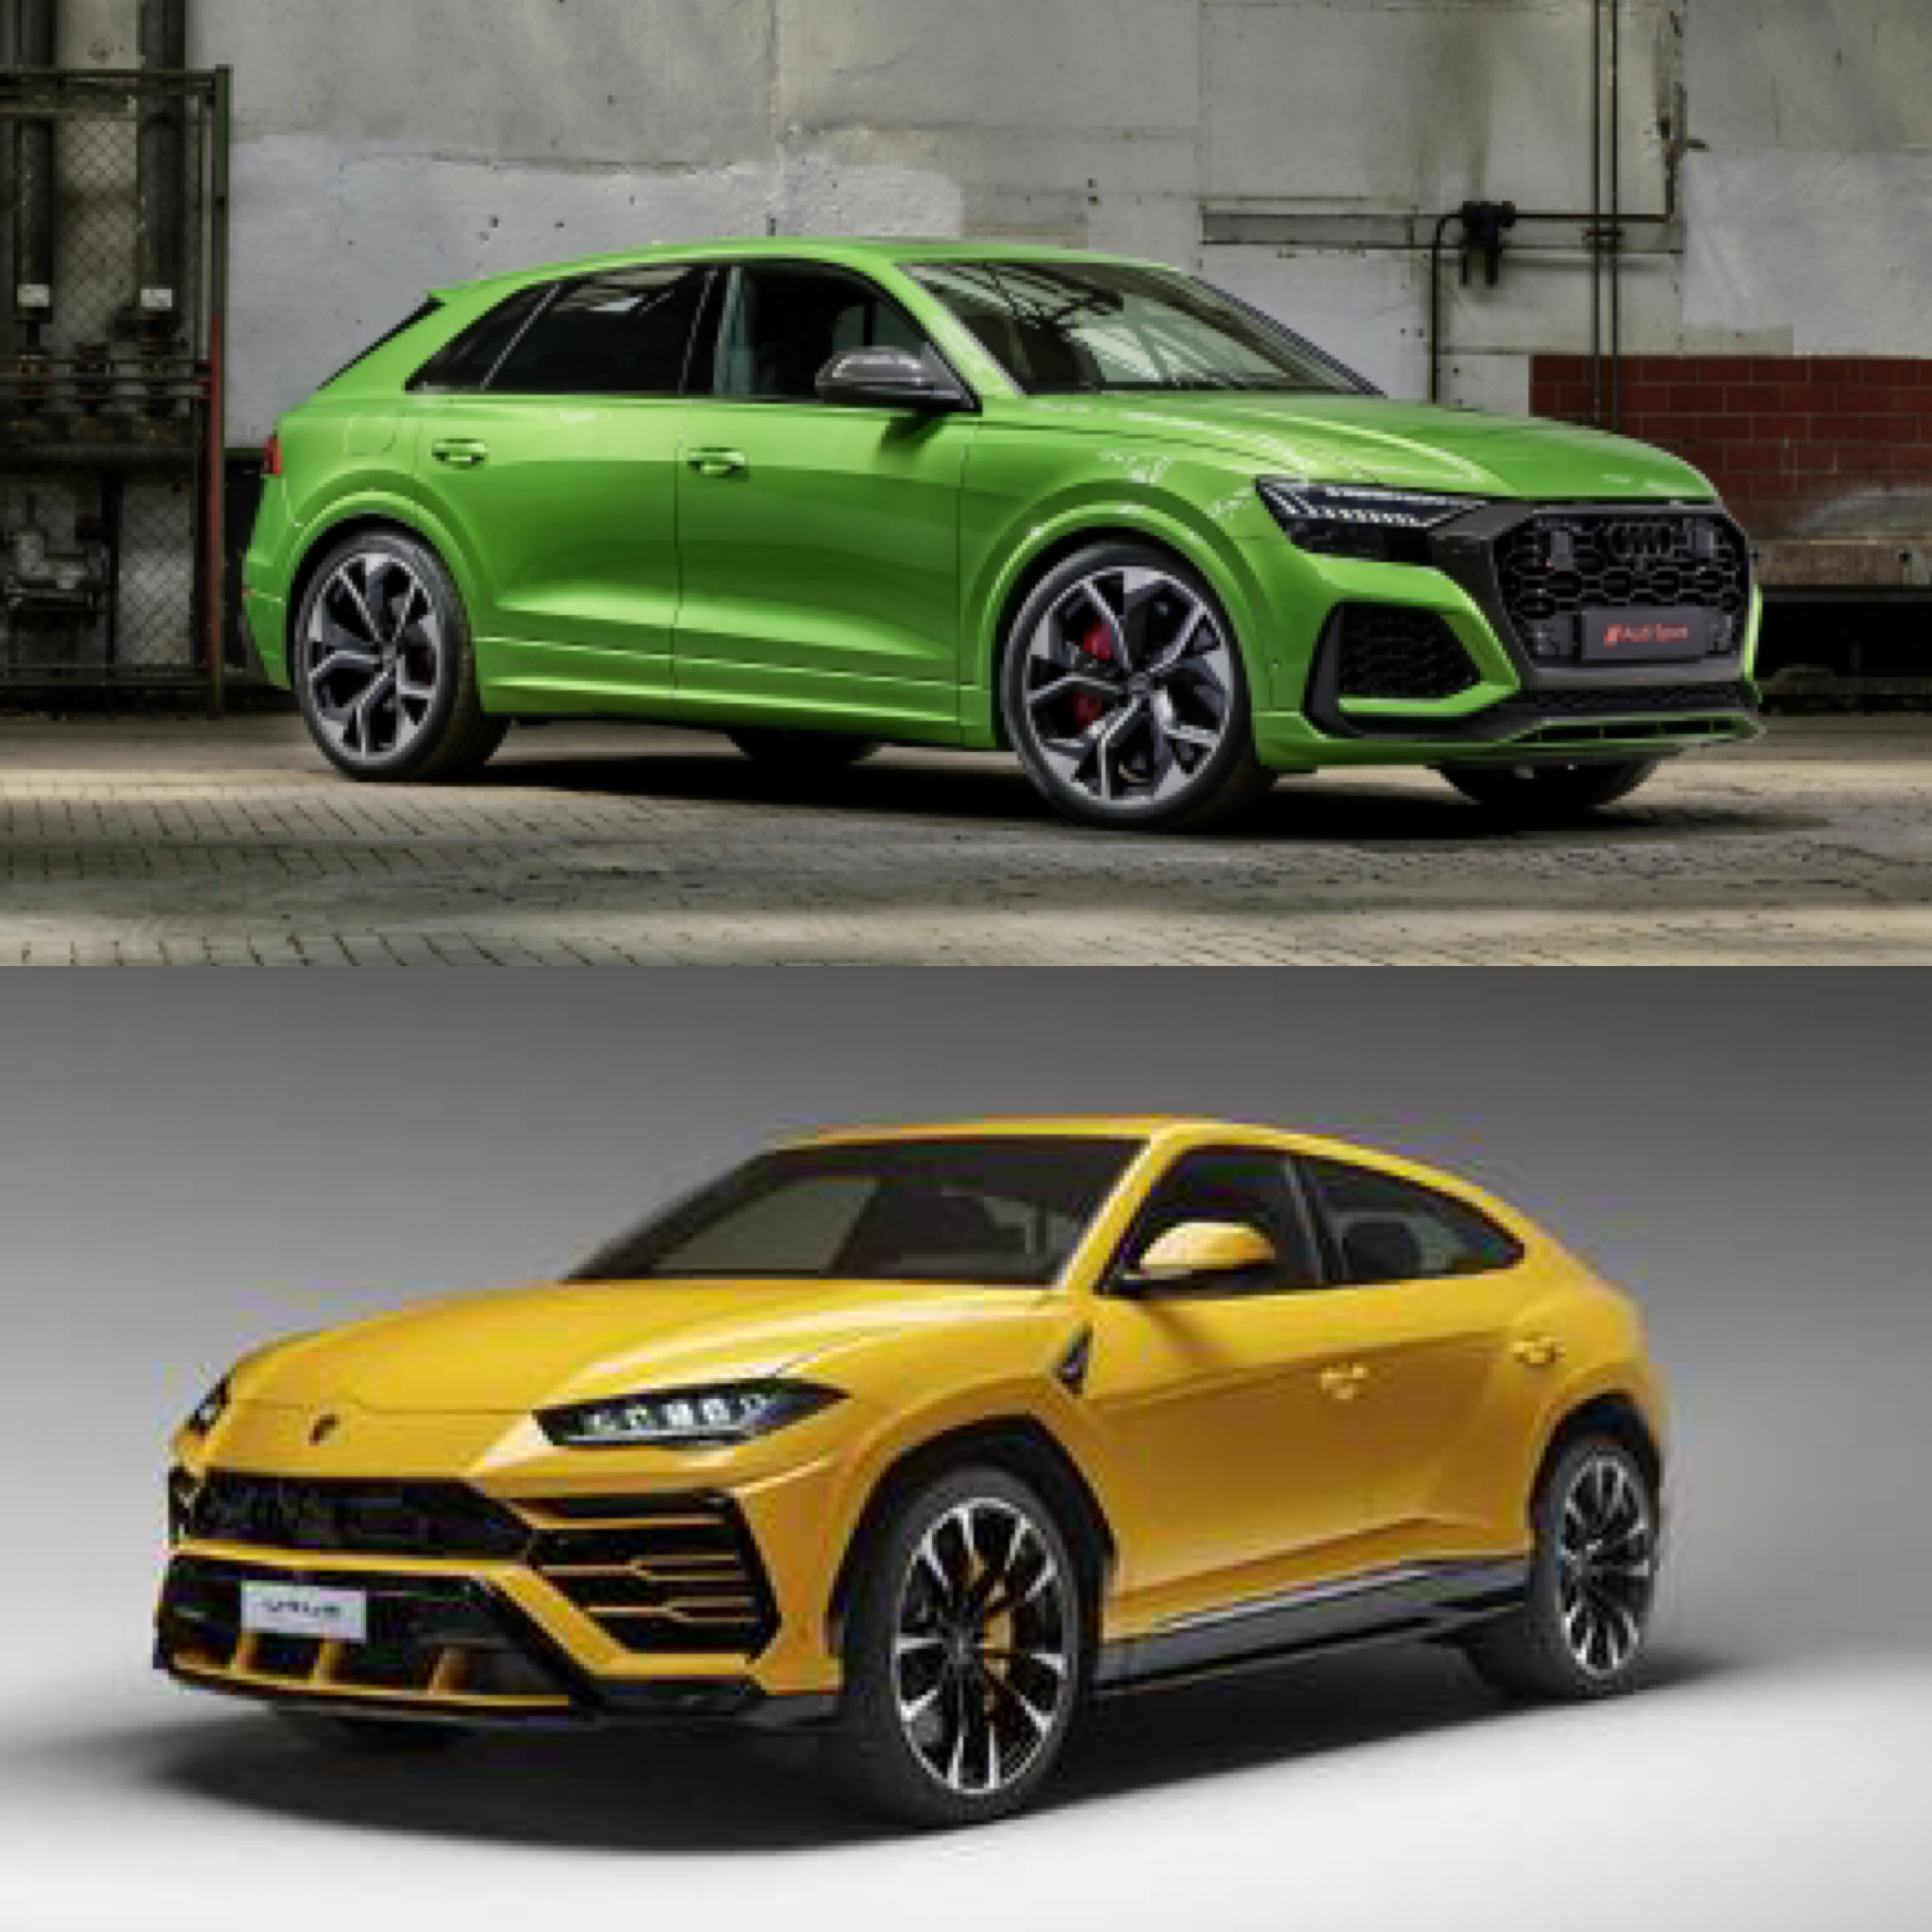 Which Monster Suv Sibling To Buy Audi Rs Q8 Or Lamborghini Urus